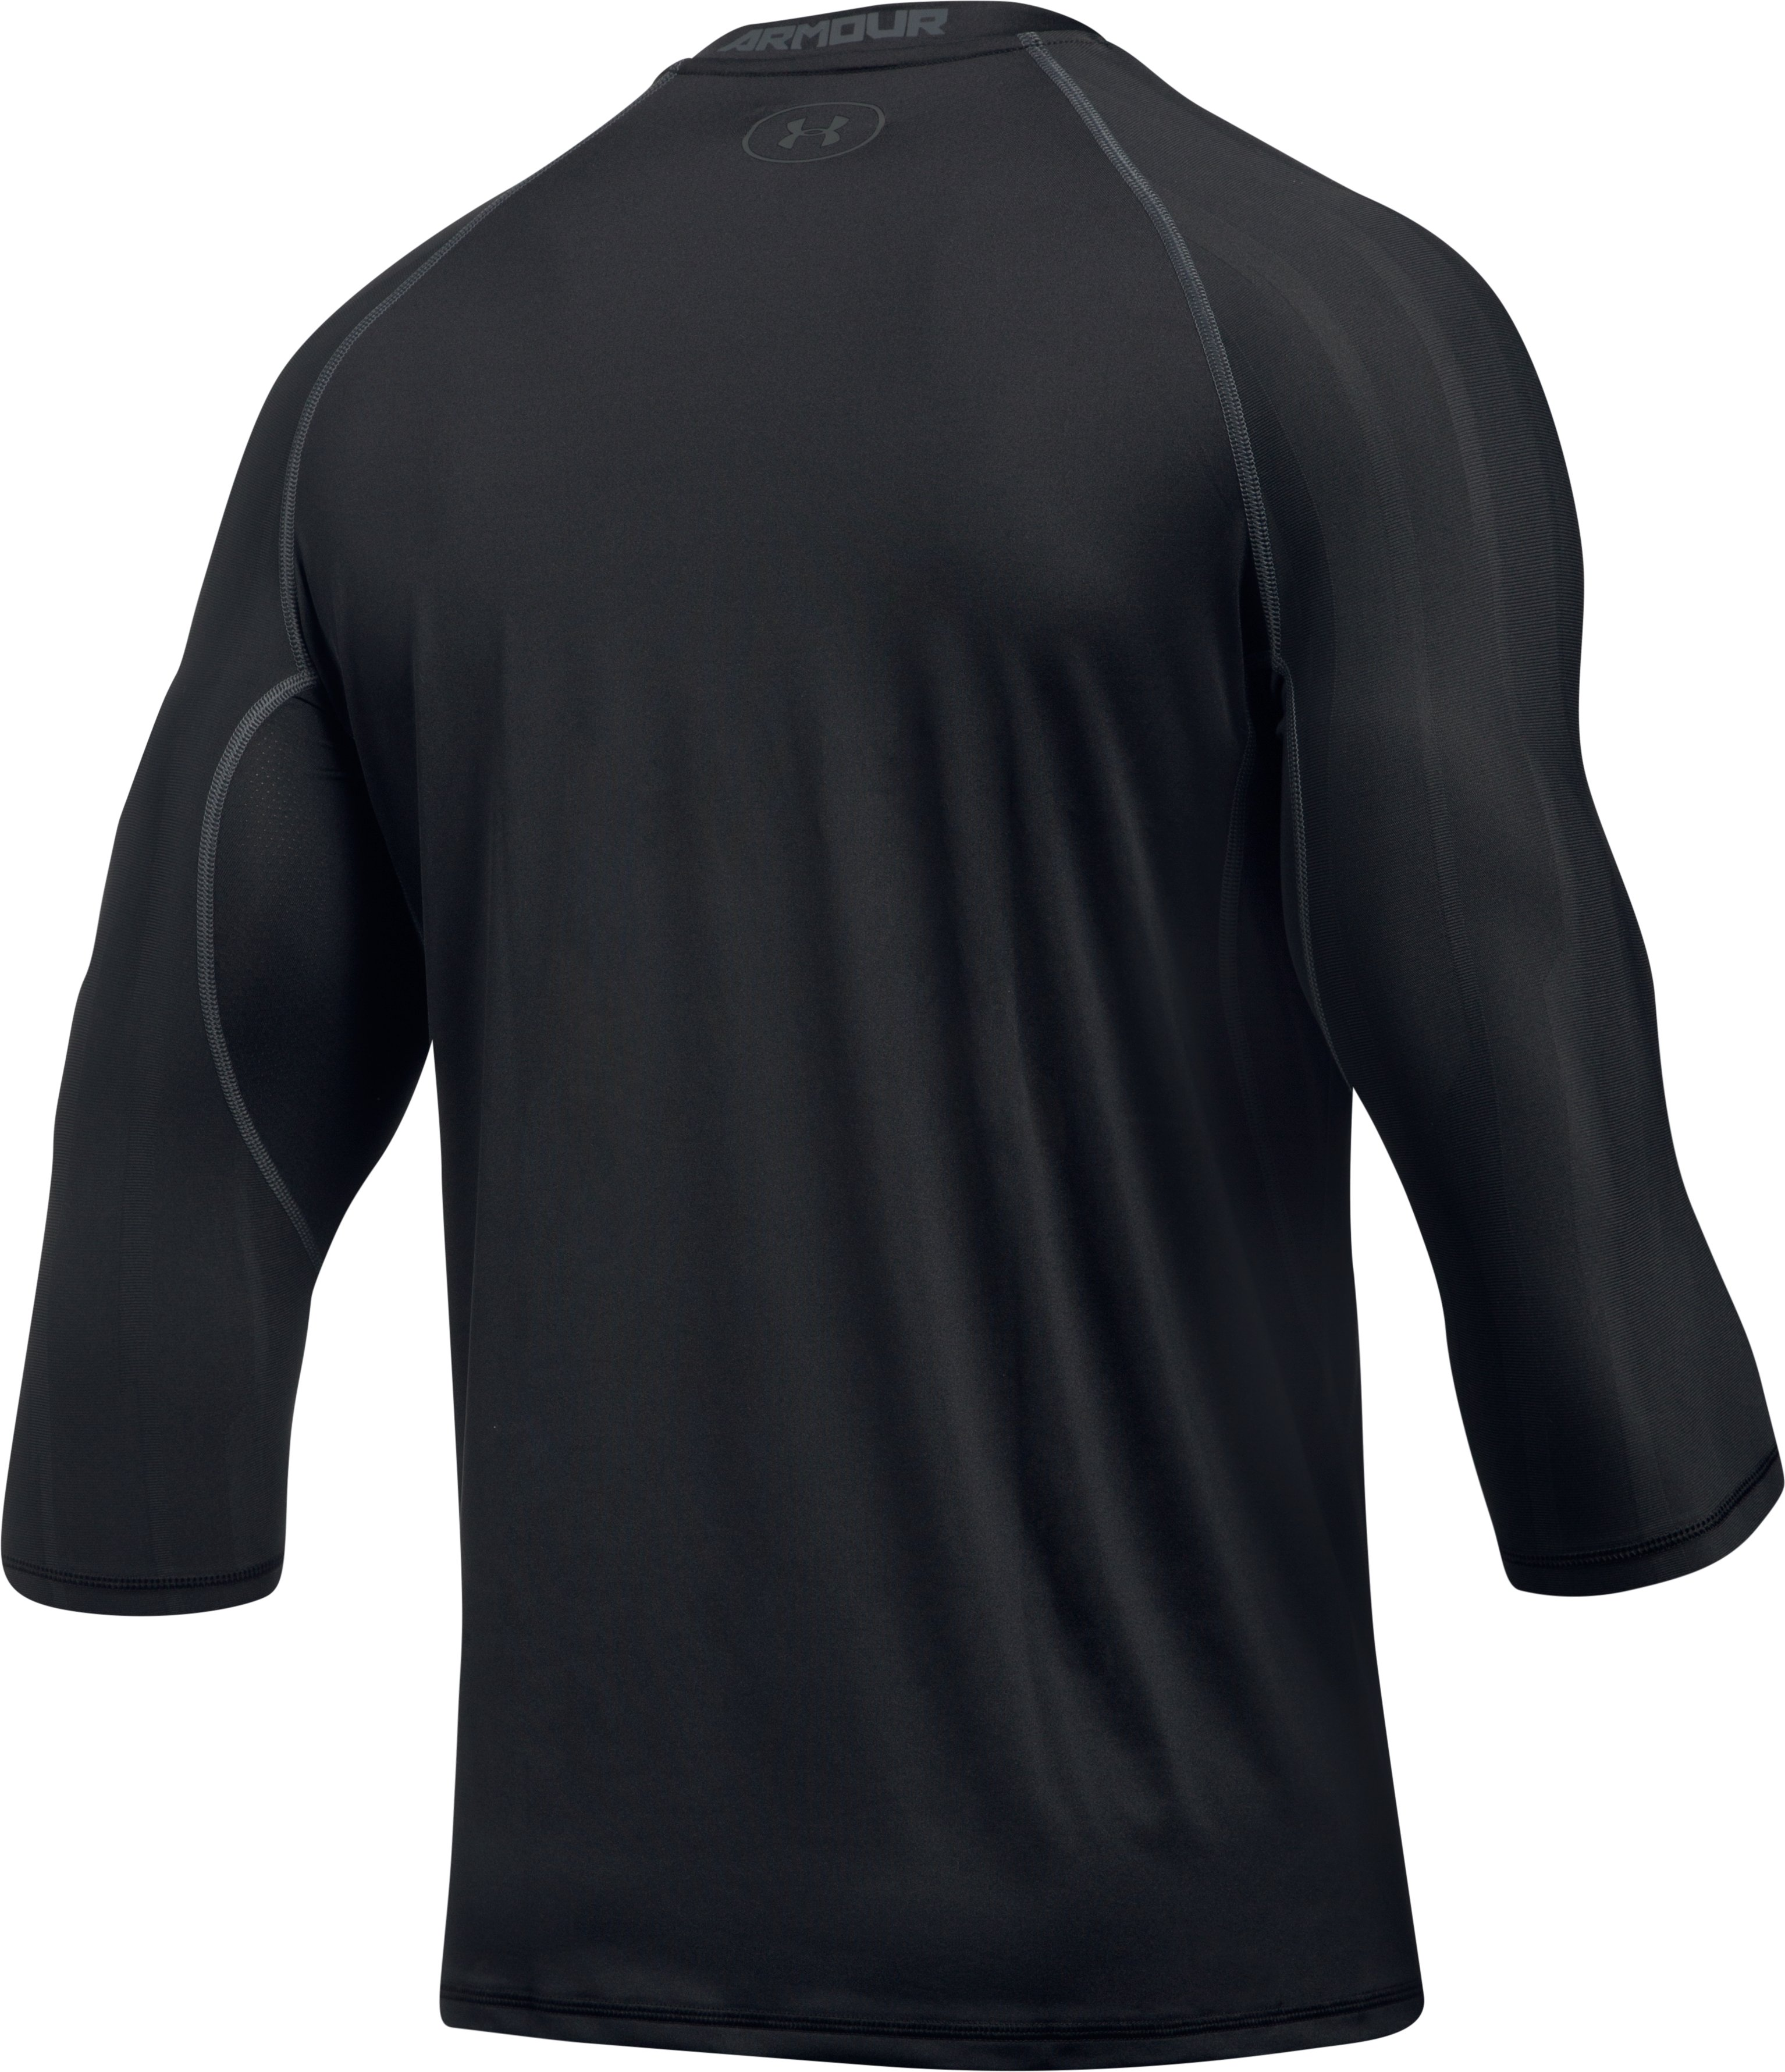 Men's HeatGear® Armour Zone Compression ¾ Sleeve T-Shirt, Black ,